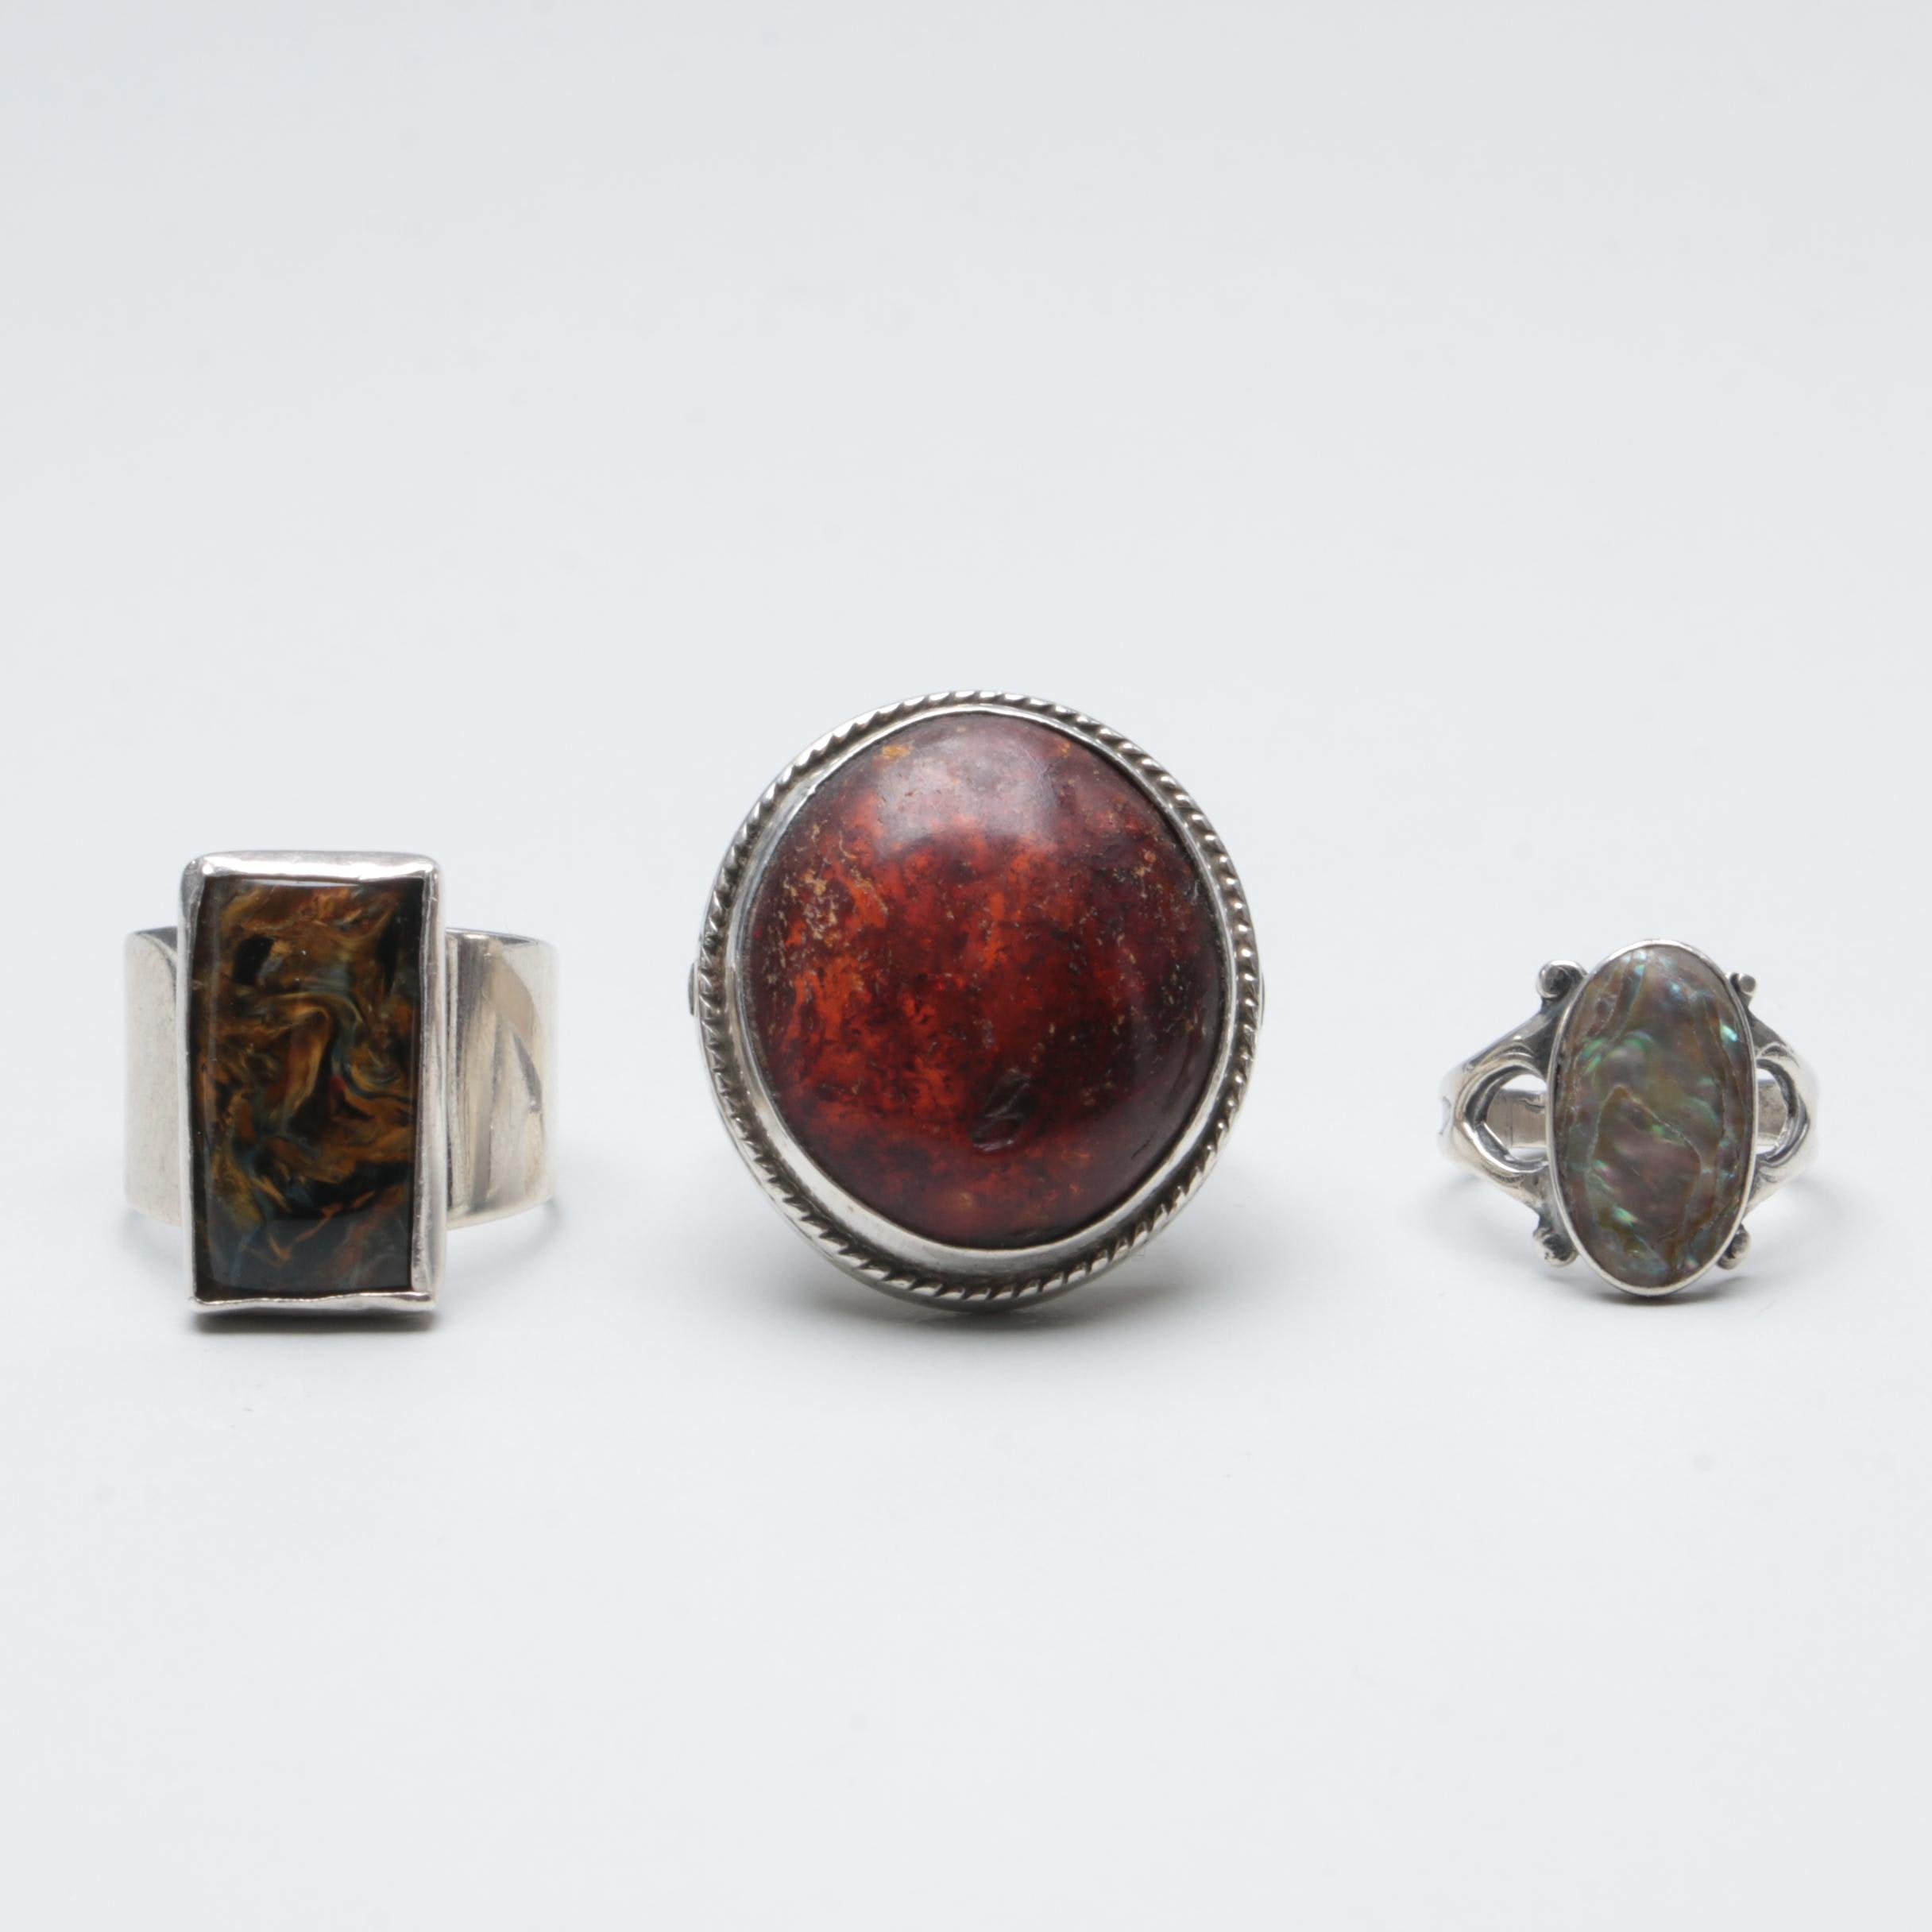 Sterling Silver Rings Including Amber, Tiger's Eye, and Abalone